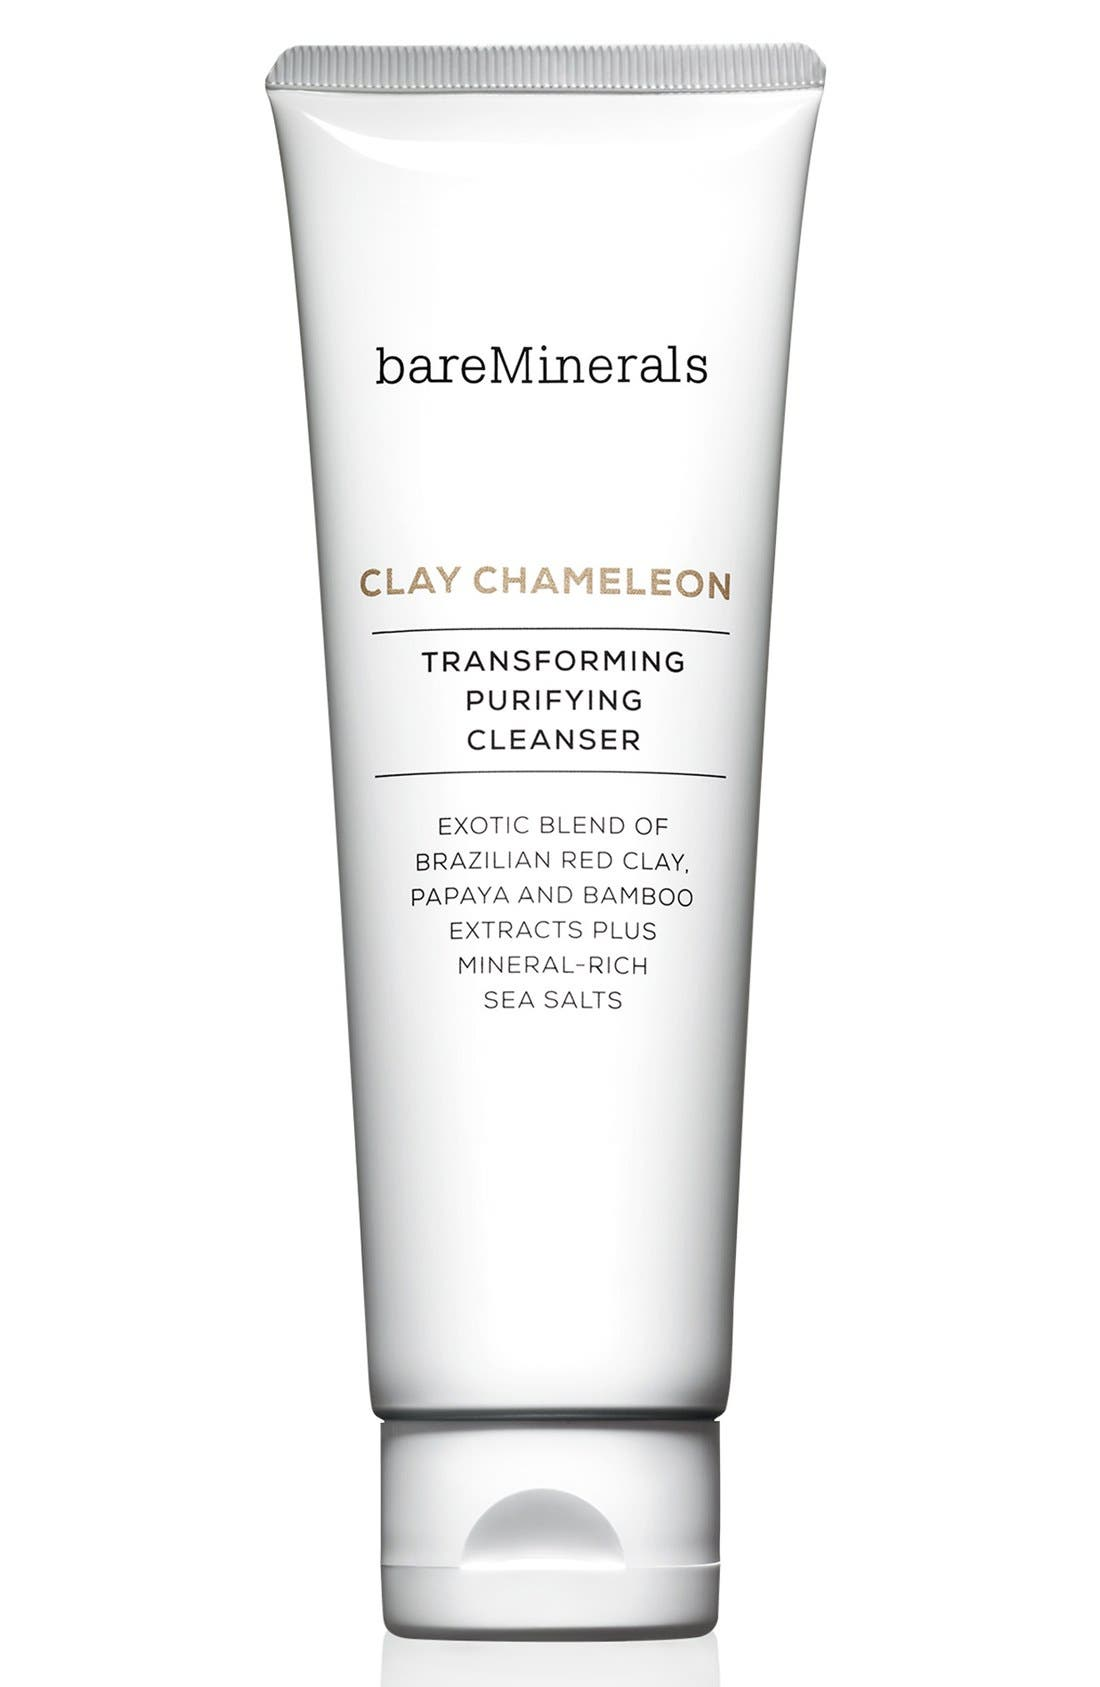 bareMinerals® Clay Chameleon Transforming Purifying Cleanser